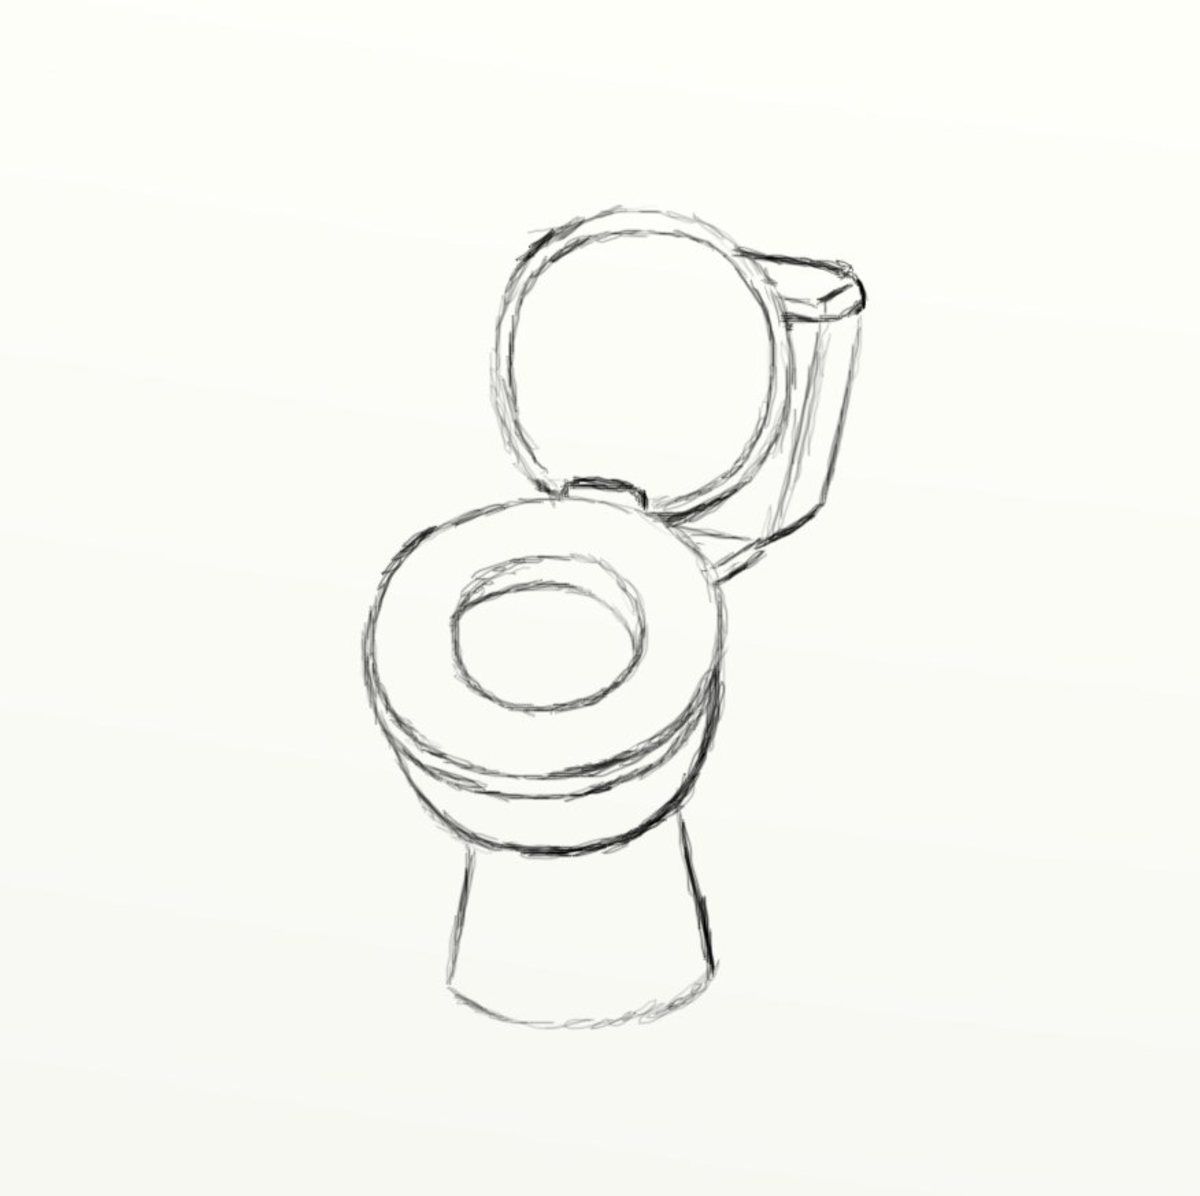 How To Draw A Toilet Seat HubPages